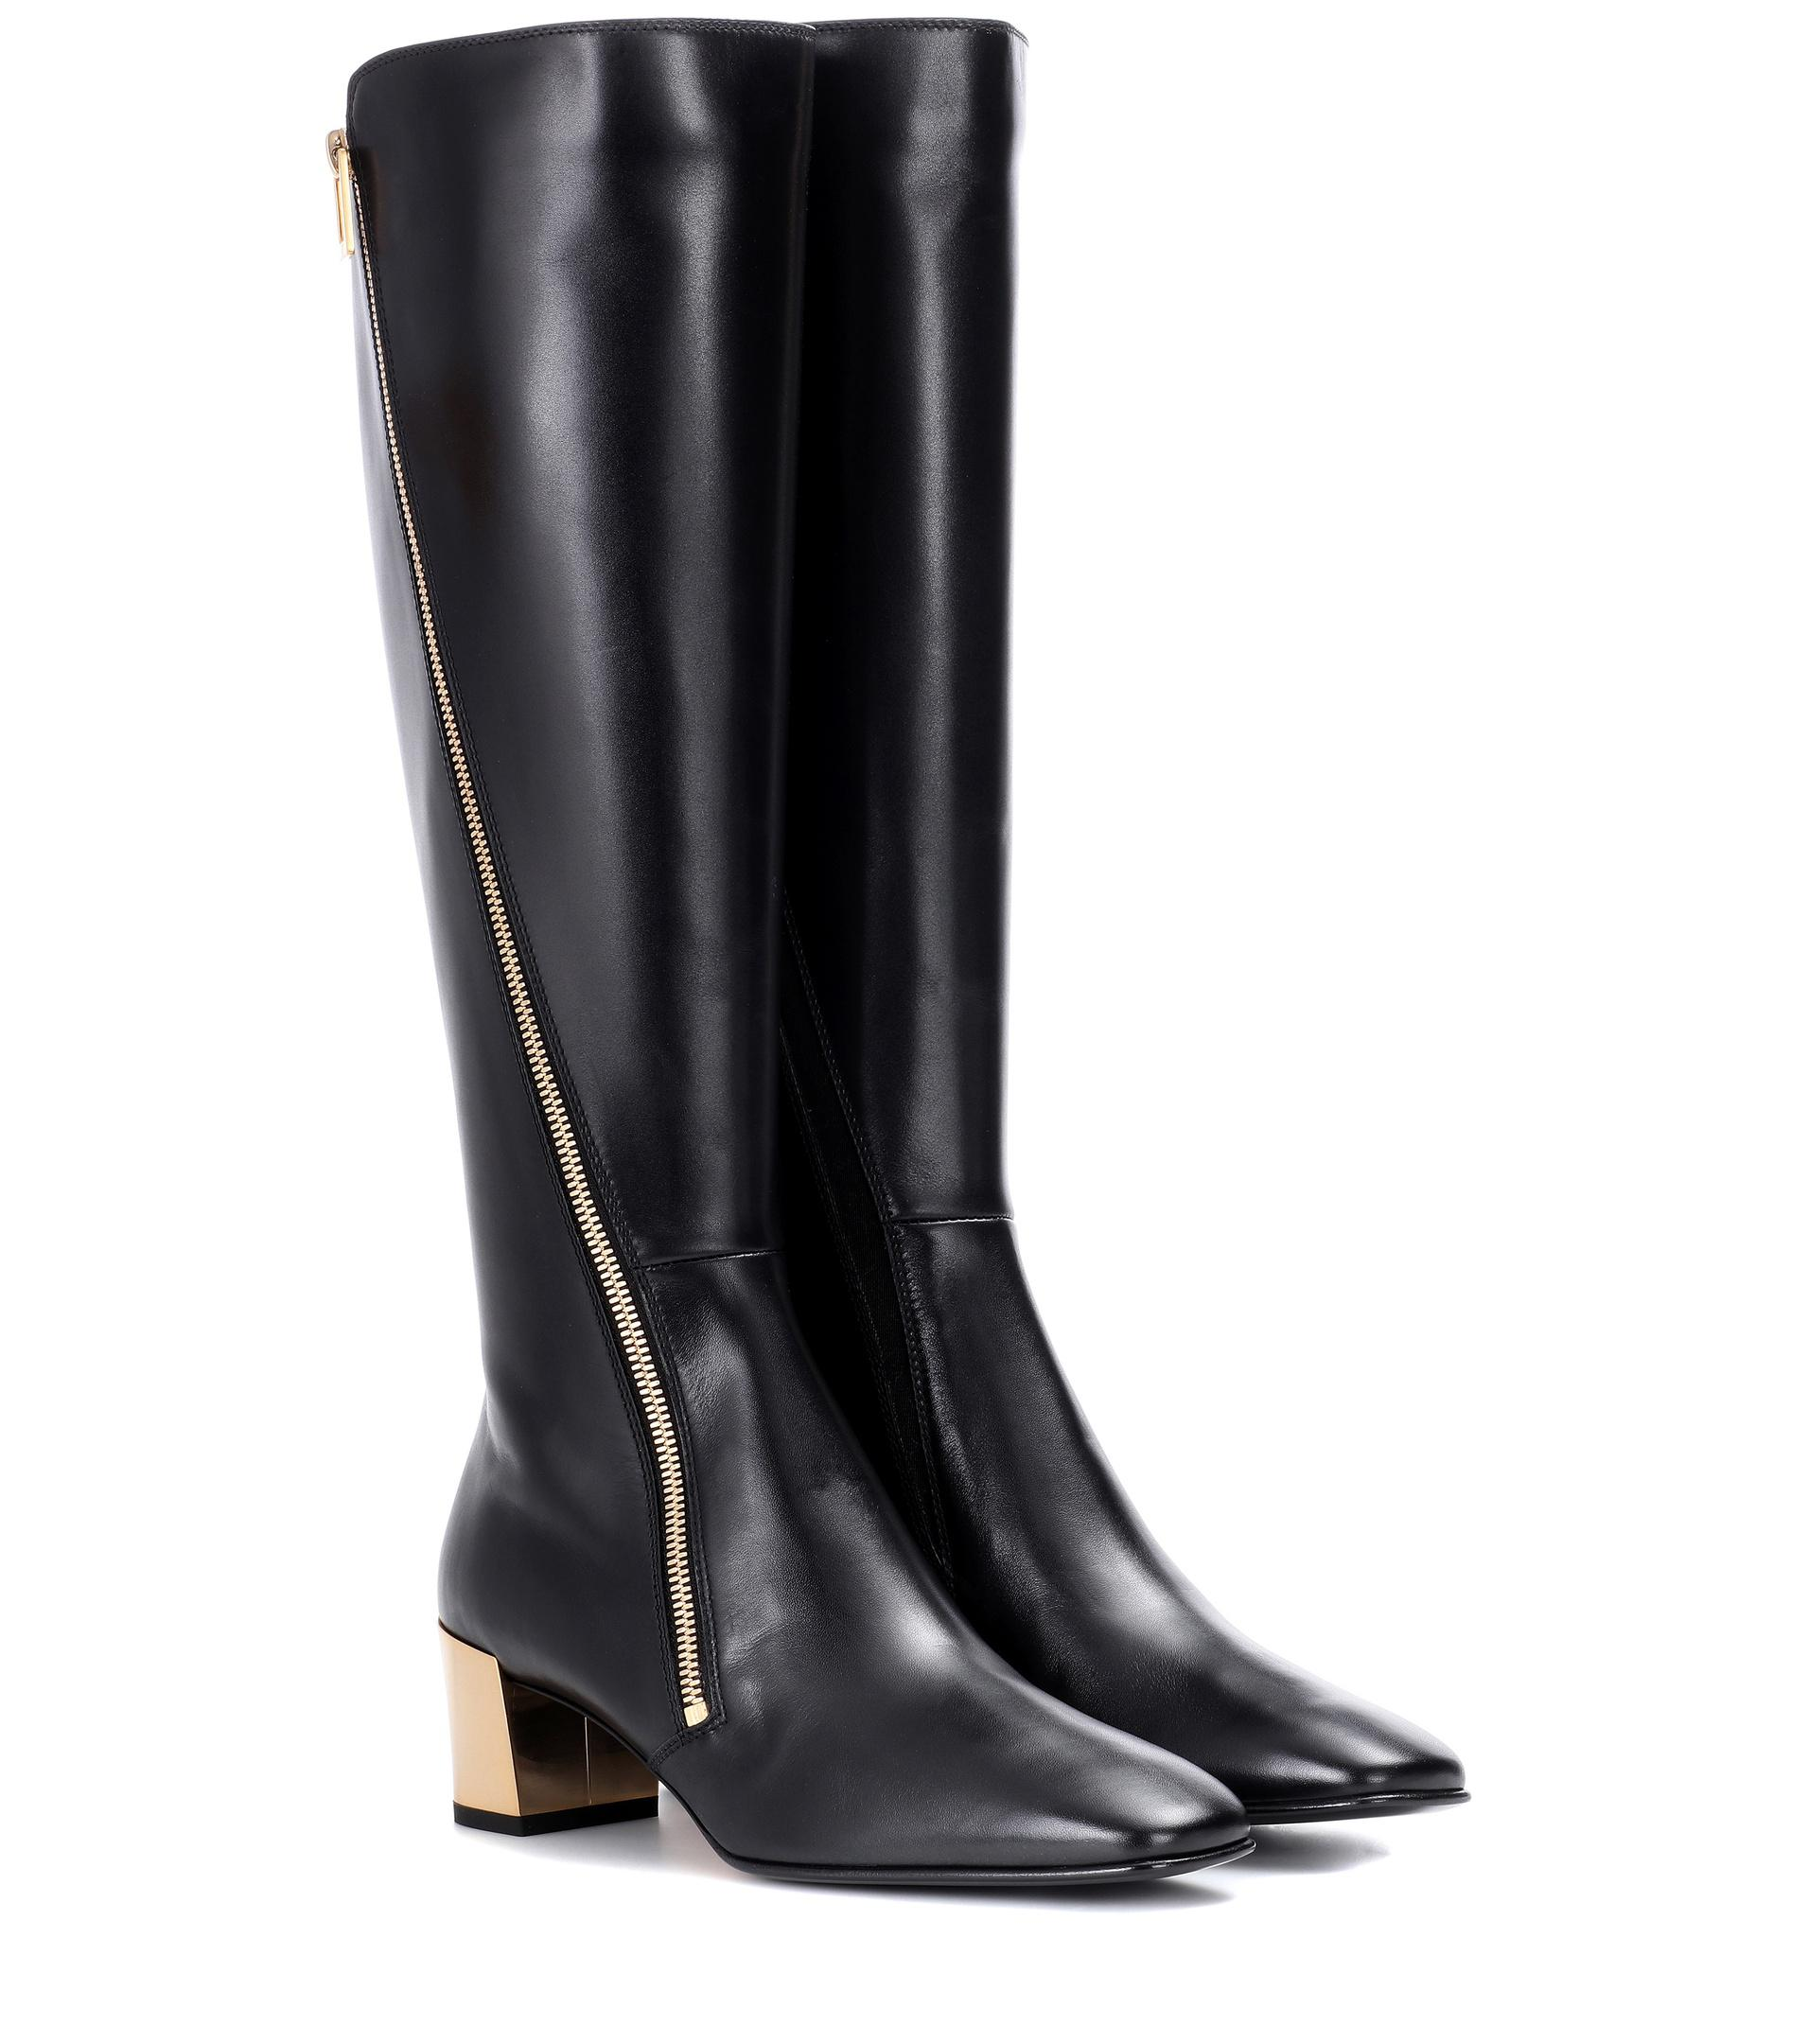 Polly Zip leather boots Roger Vivier uOynhGhN